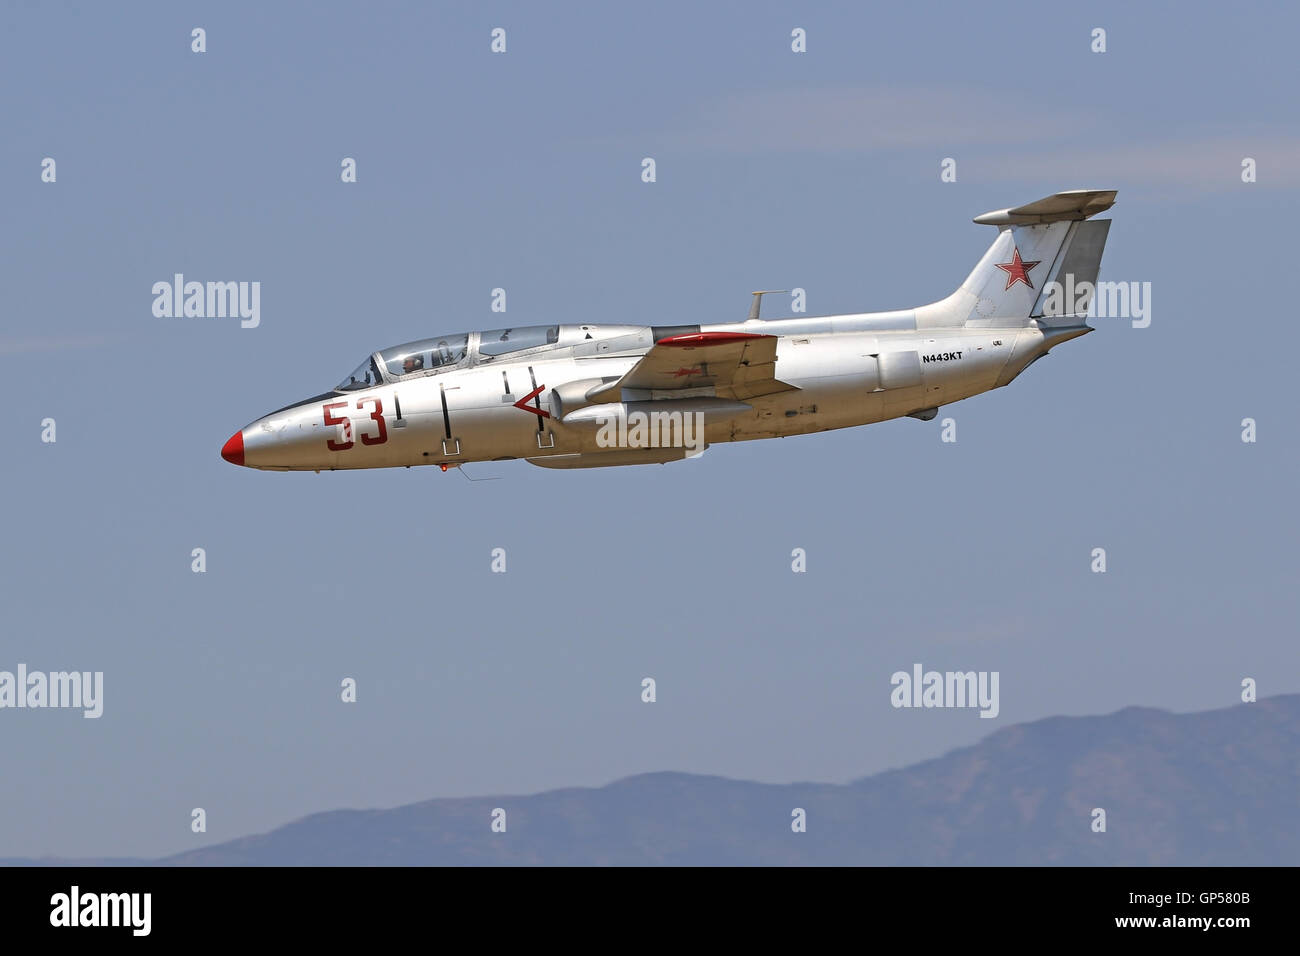 Jet airplane L-29 Delphin military trainer of the Soviet Union flying at air show - Stock Image